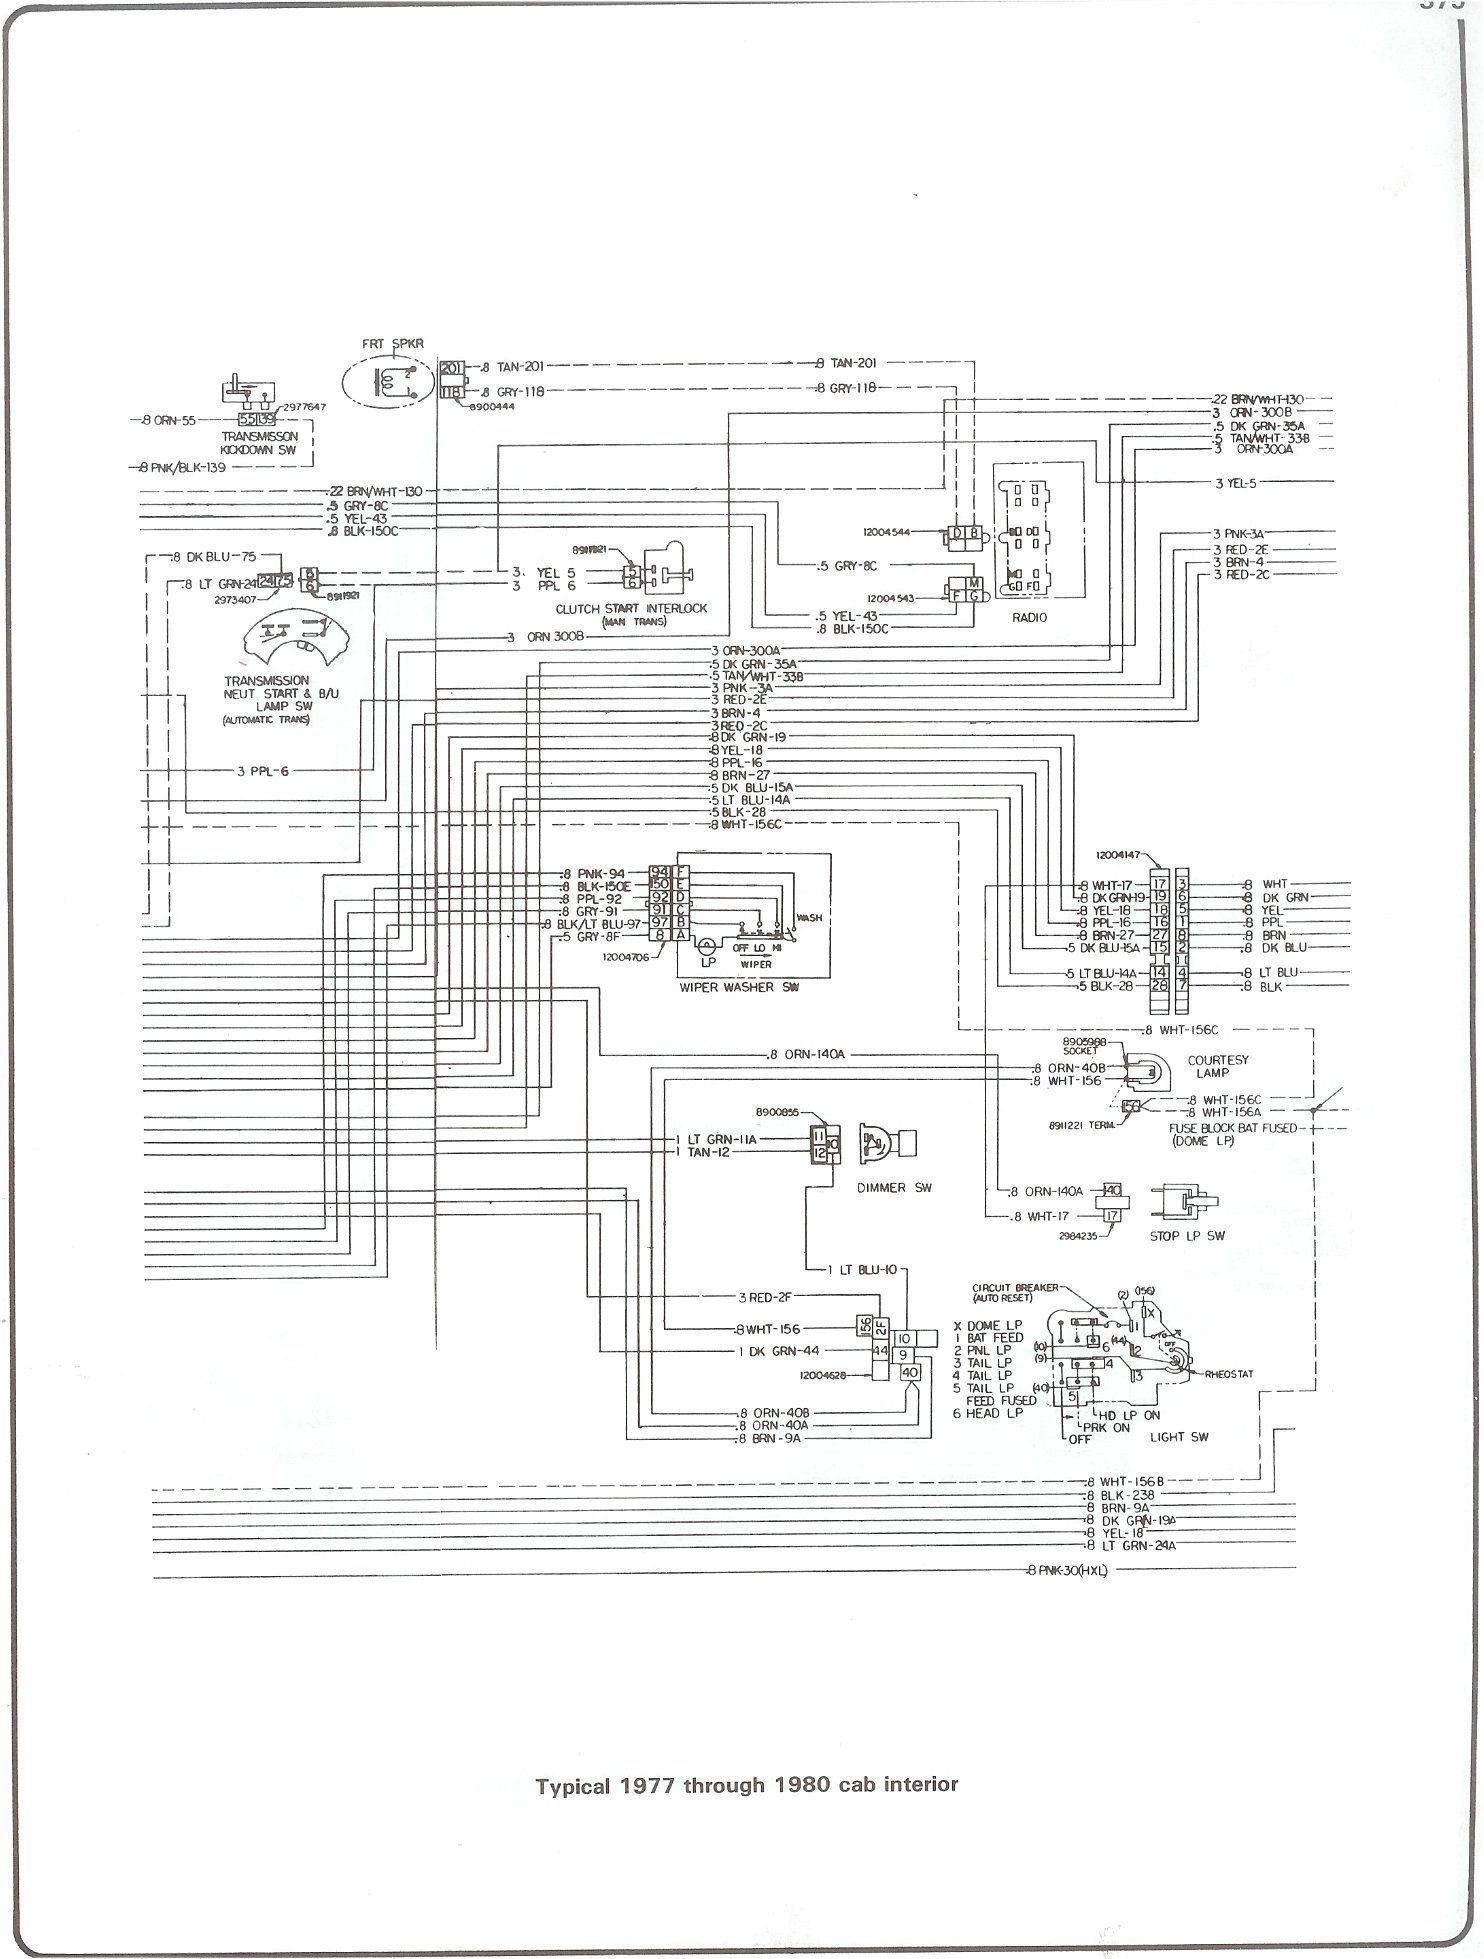 77 80_cab_inter complete 73 87 wiring diagrams 1985 Chevy Truck Wiring Harness at webbmarketing.co